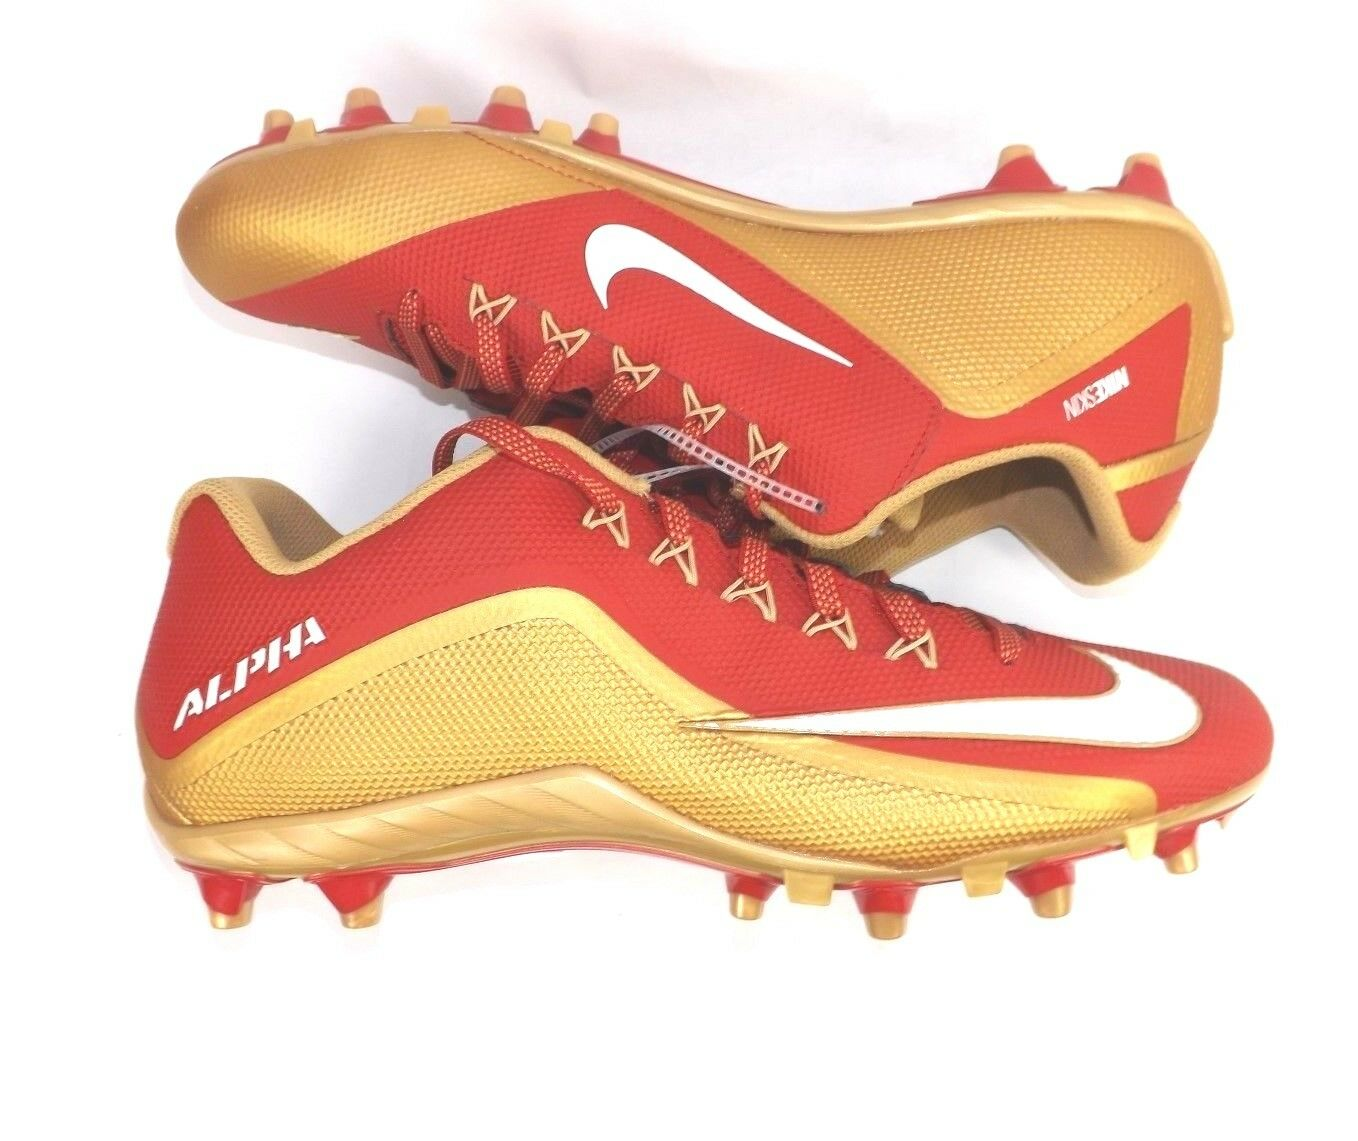 5042de5a7 NIKE Alpha Football Cleats Size 13.5 Red gold New Without Box 729445-628